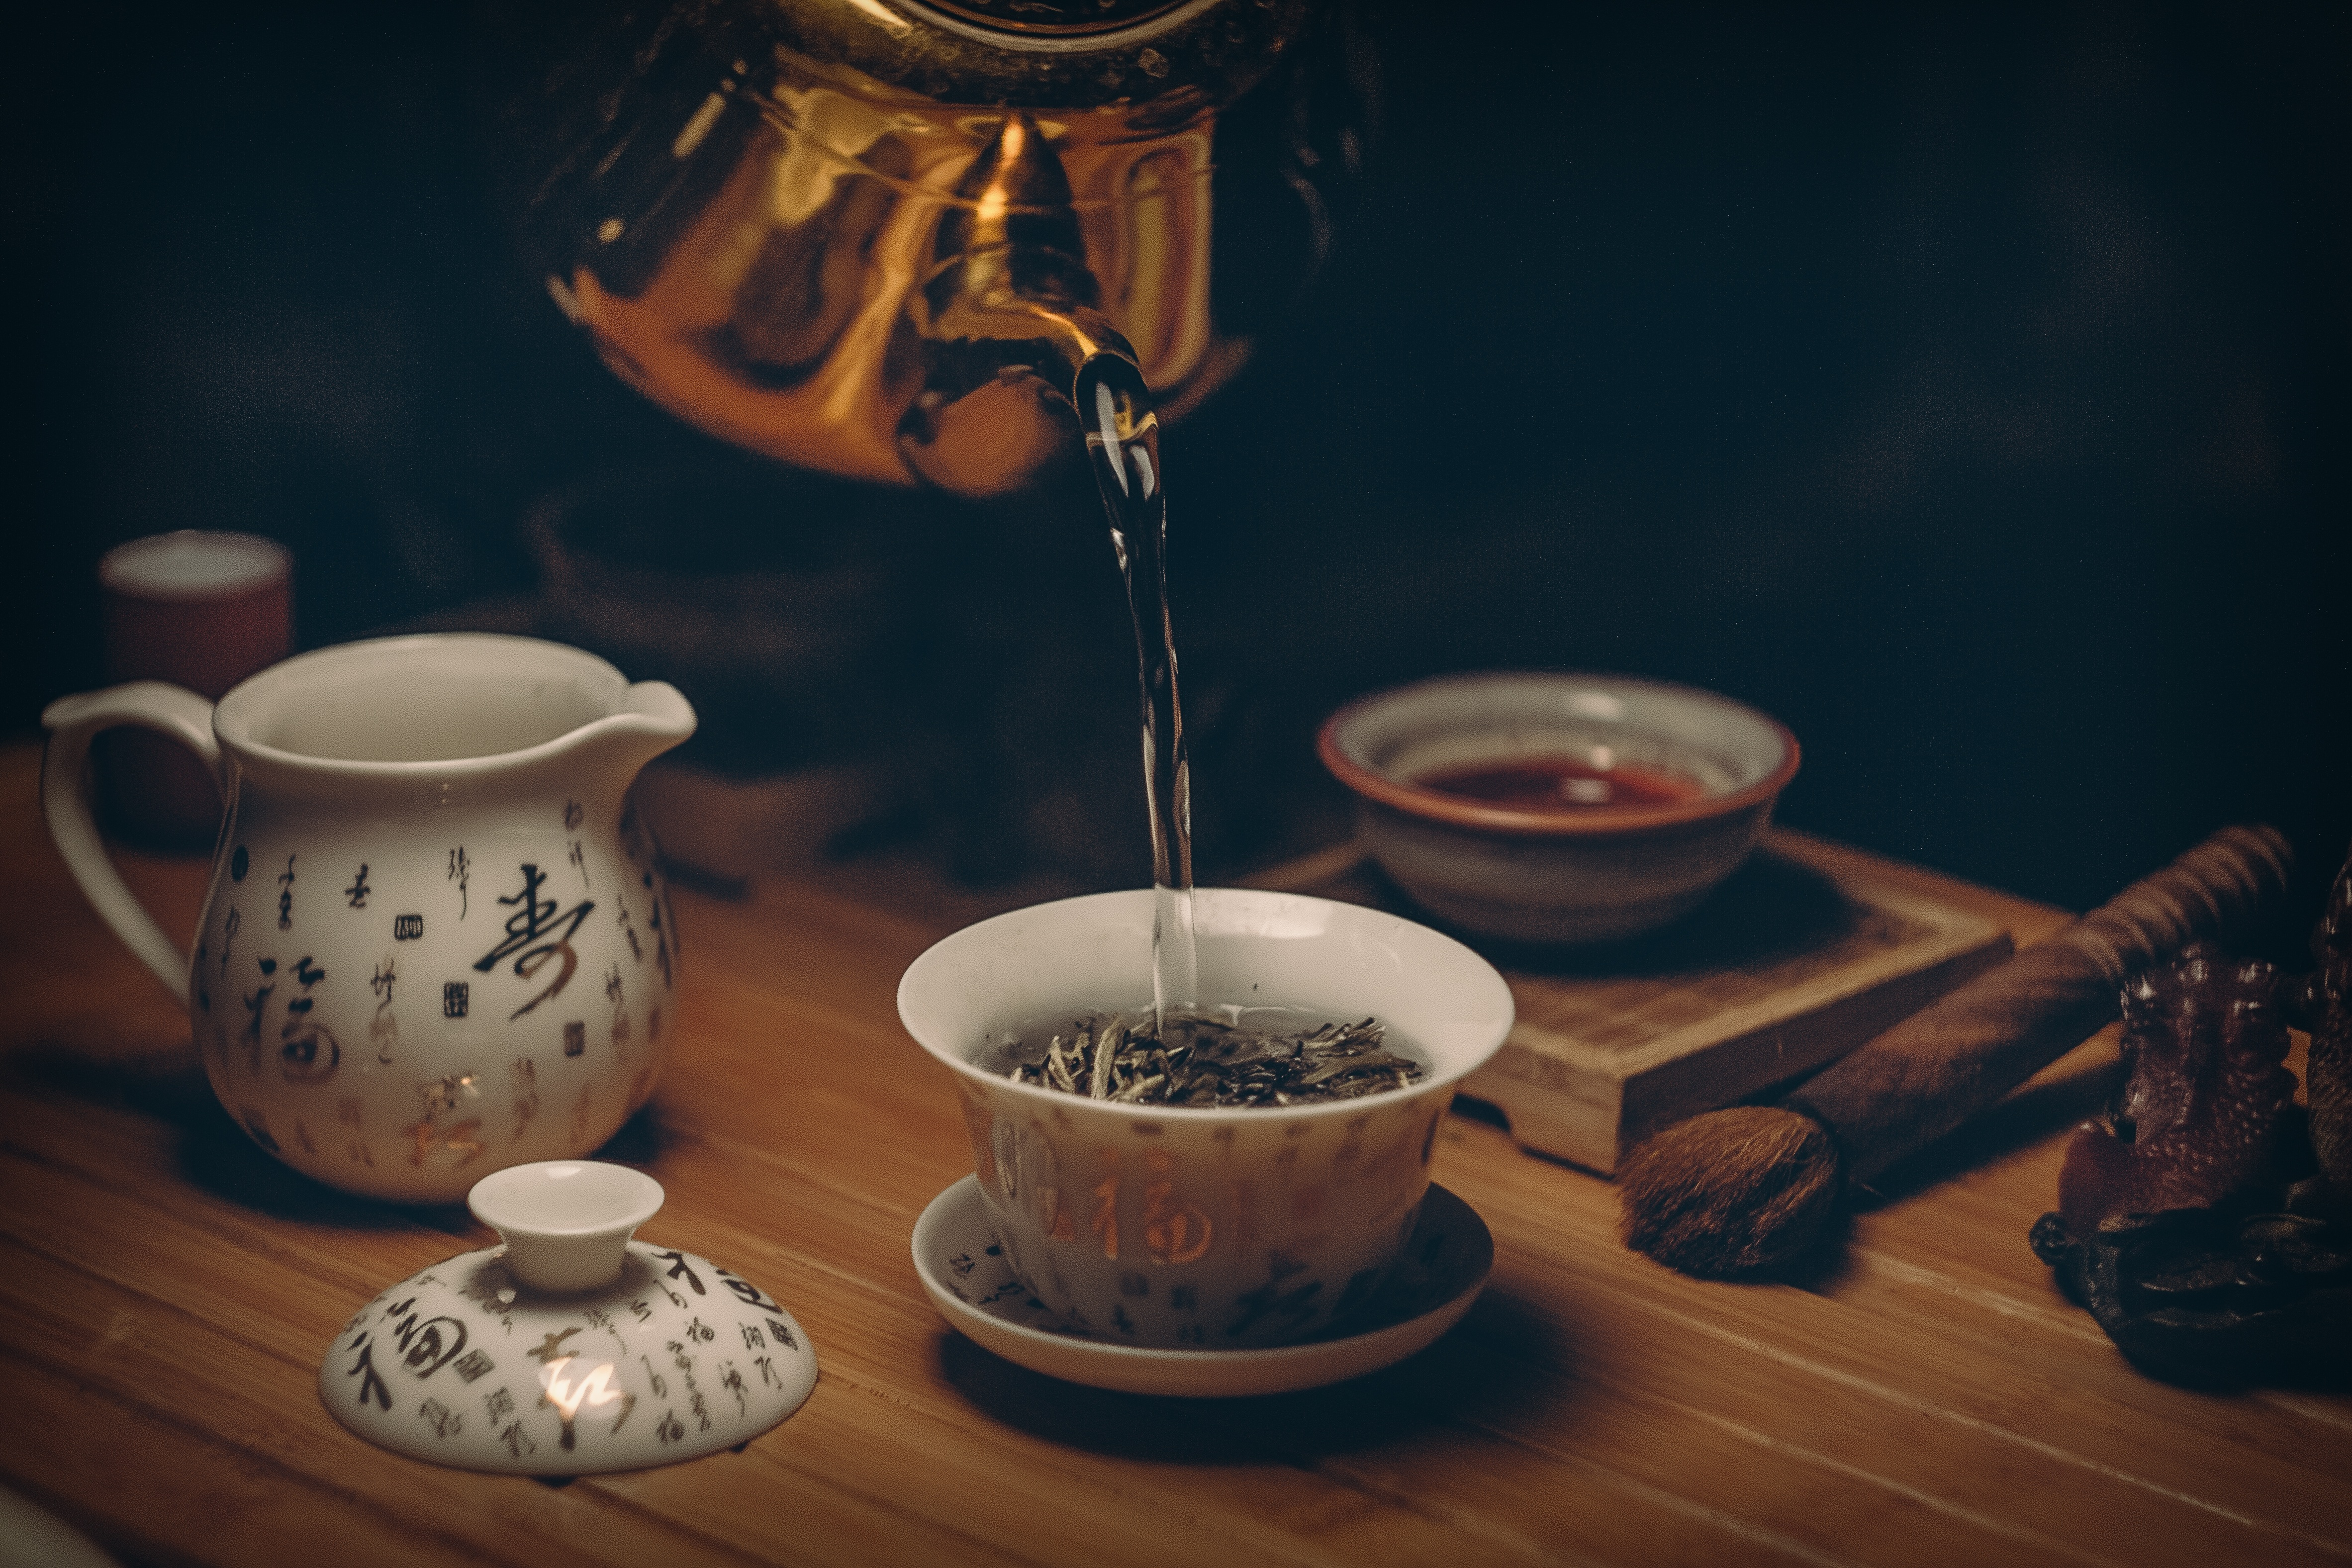 golden kettle pouring hot water into a white teacup atop a wooden table